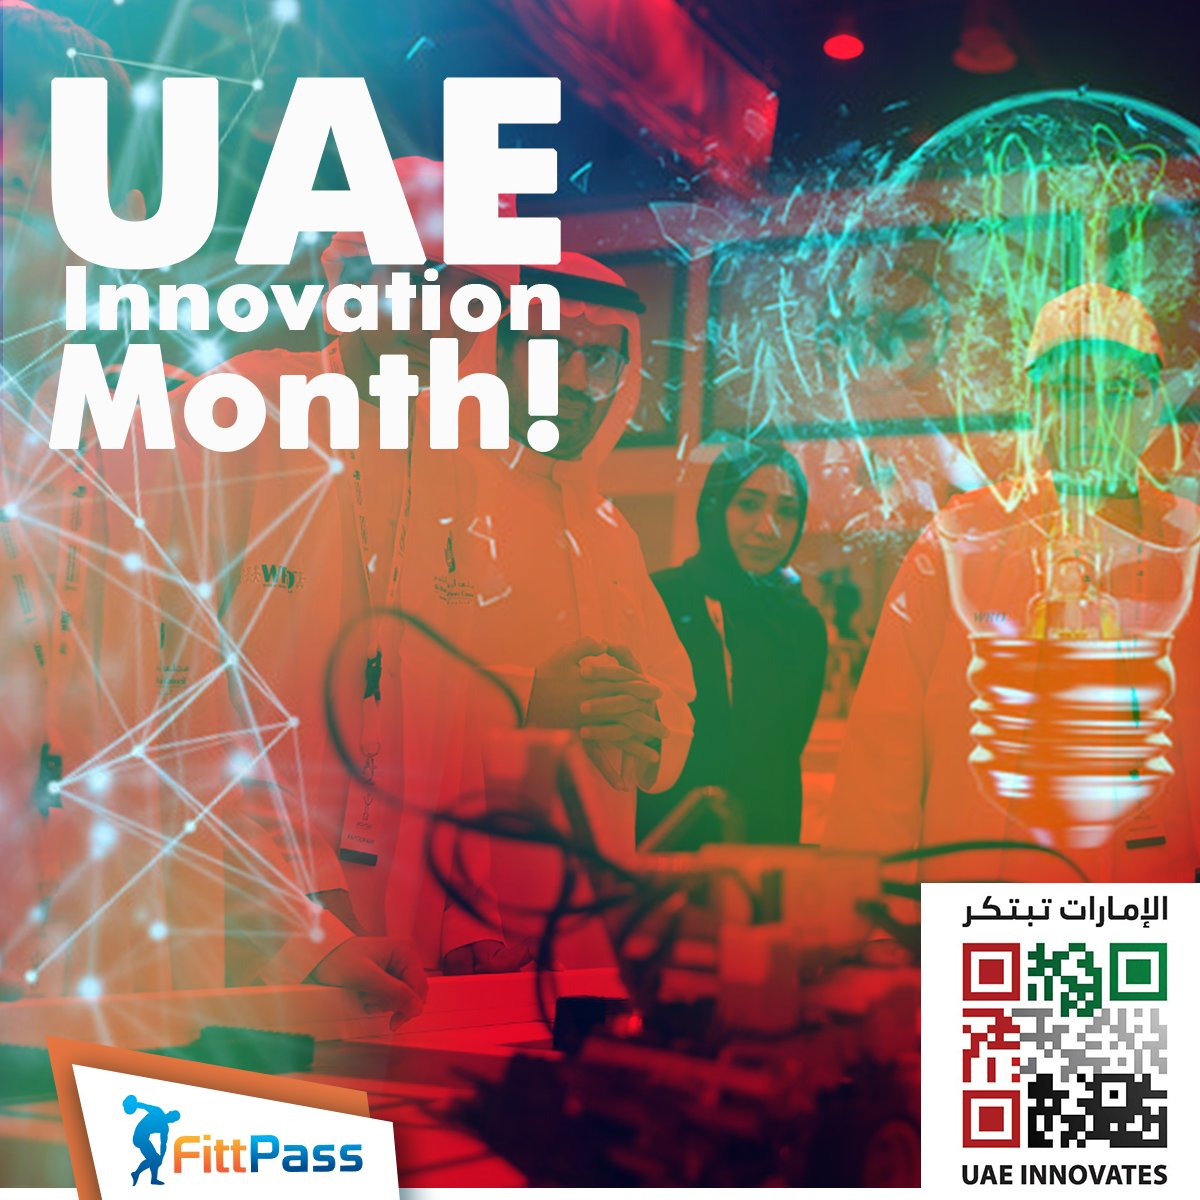 February is #UAEInnovationMonth with events happening in RAK and Fujairah from 15-21 Feb and in Dubai from 22-29 Feb.  Learn how innovation will shape the next 50 years in the UAE!  #UAEInnovationMonth #UAE_Innovates  #الإمارات_تبتكر #شهر_الإمارات_للابتكار